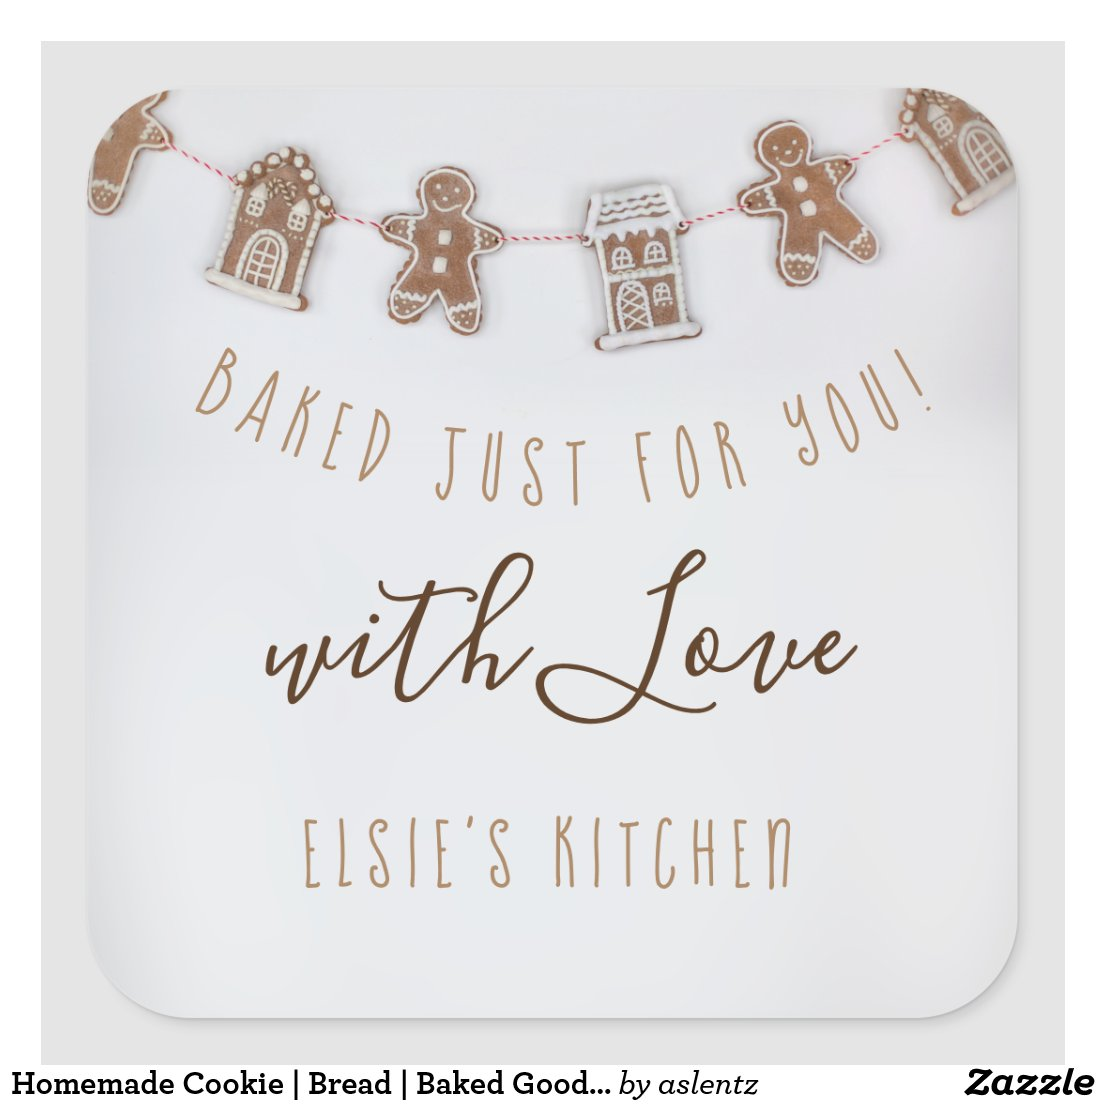 Homemade Cookie | Bread | Baked Goods label